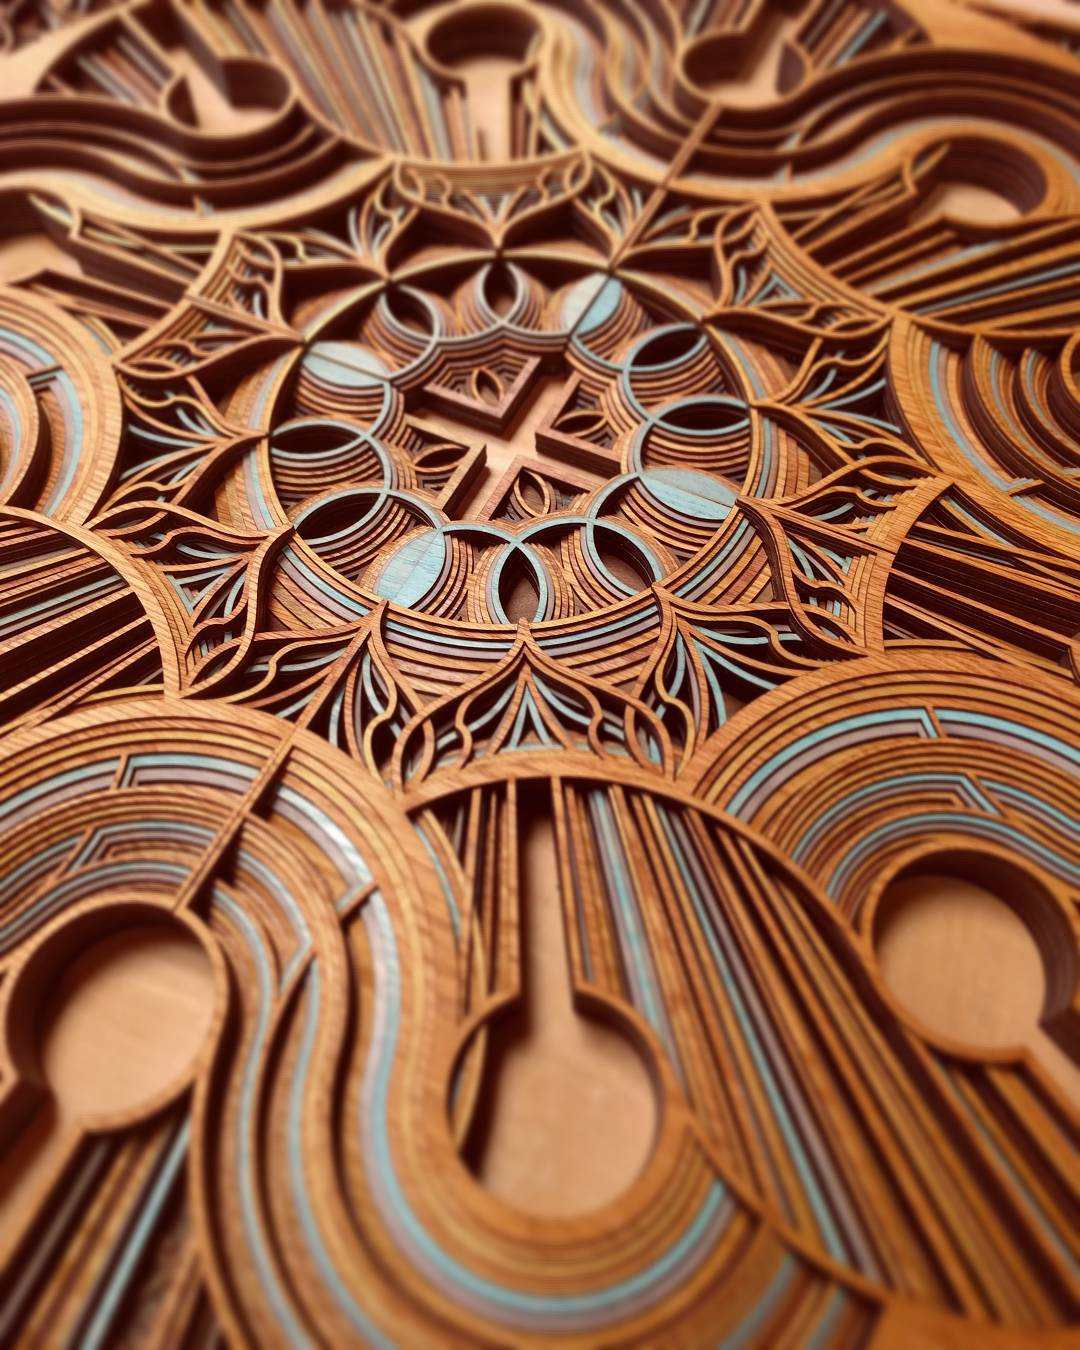 Cut Plywood Relief Sculptures Embedded with Mandalas and Geometric Patterns by Gabriel Schama (8 pics)